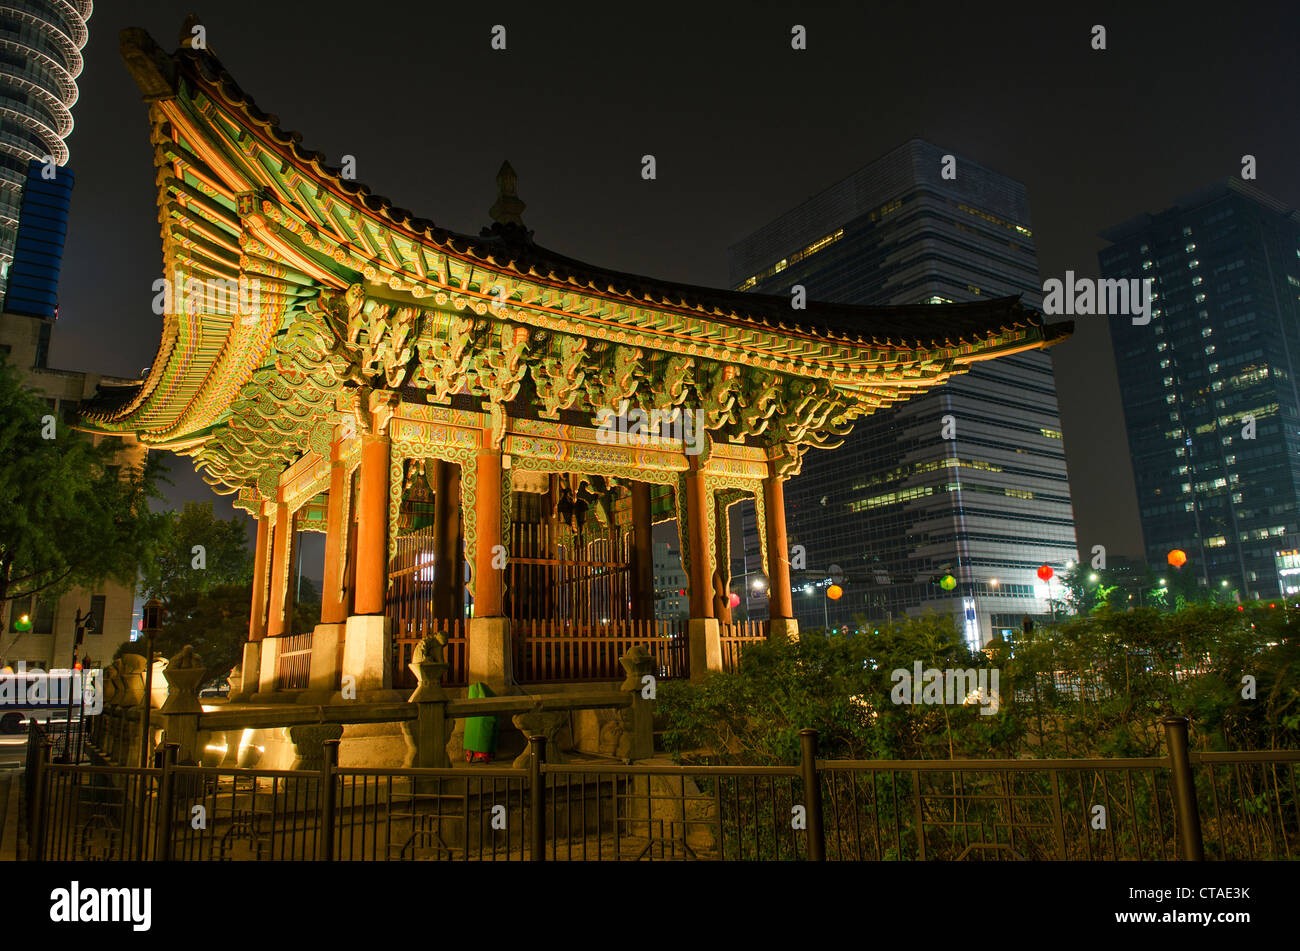 temple in central seoul south korea at night - Stock Image